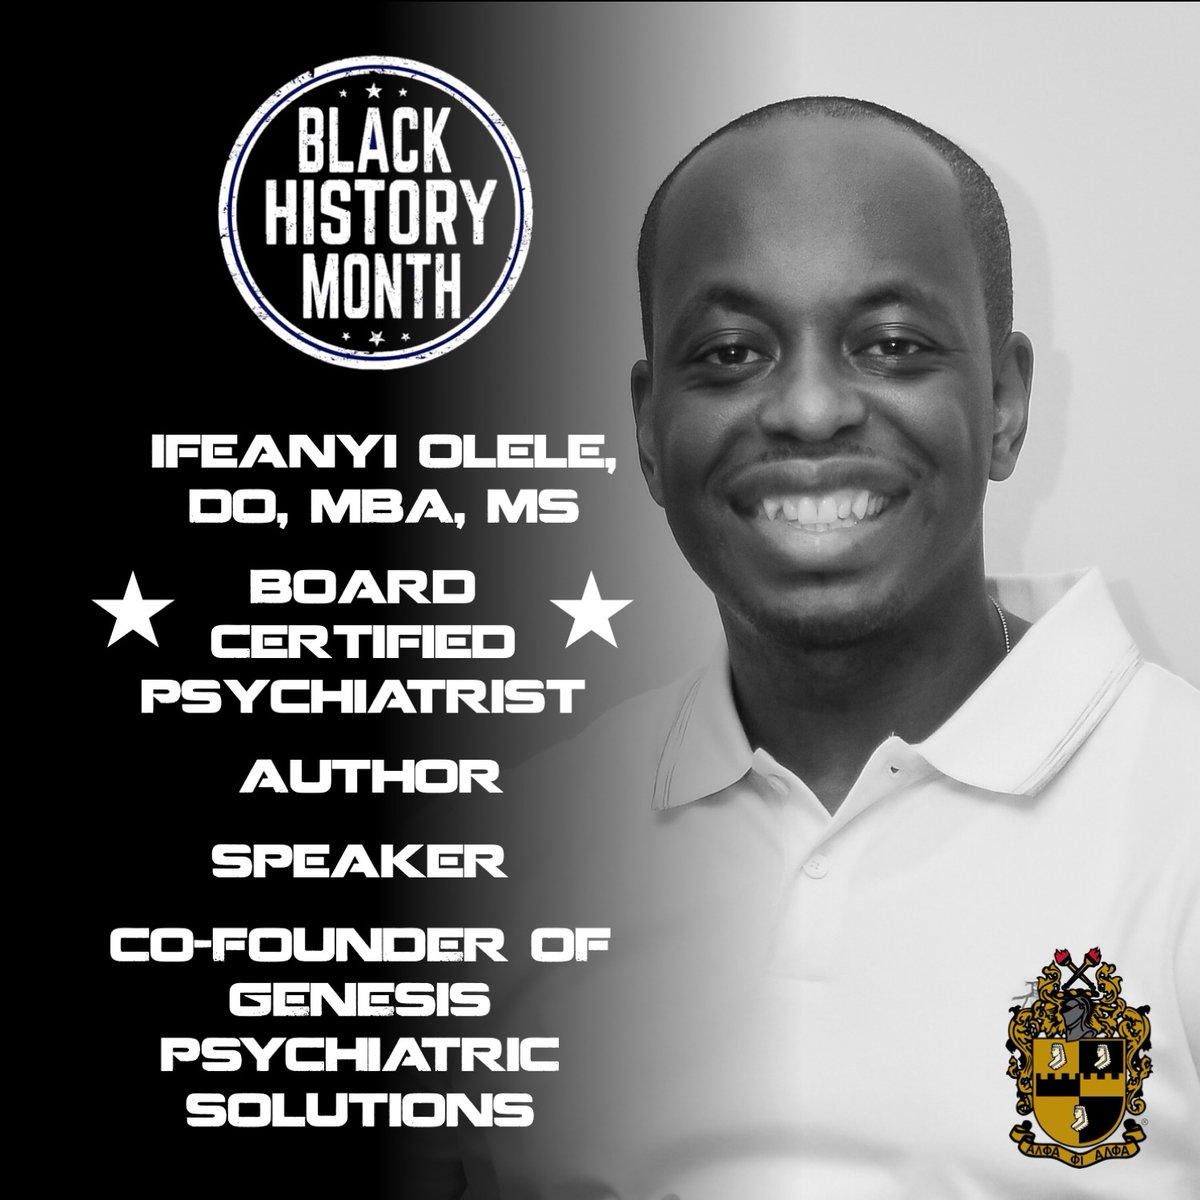 EVERY MONTH IS BLACK HISTORY MONTH.  Dr. Olele is an author, the CEO & co-founder of Genesis Psychiatric Solutions, & a board certified psychiatrist.  #mindset #mentalhealth #attitude #gpsmindset  #blackhistorymonth #blackhistory #anxiety #depression #adhd #alphaphialpha